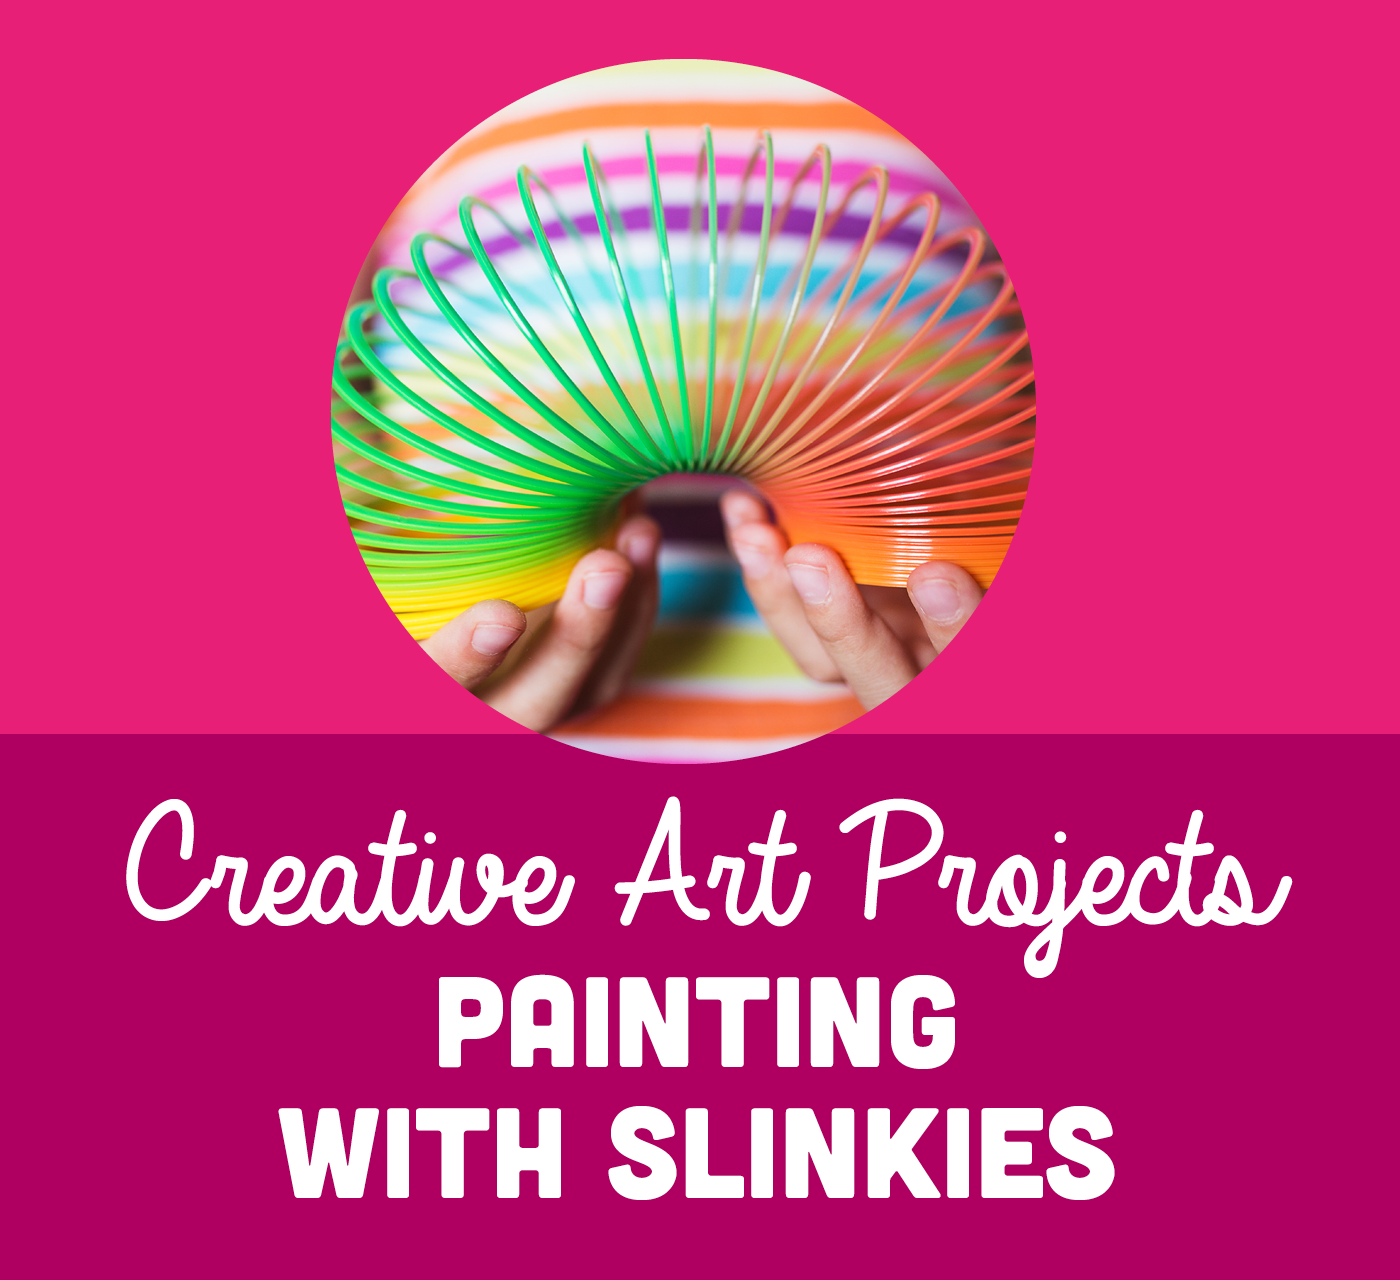 At Home Play Tips: Painting with Slinkies